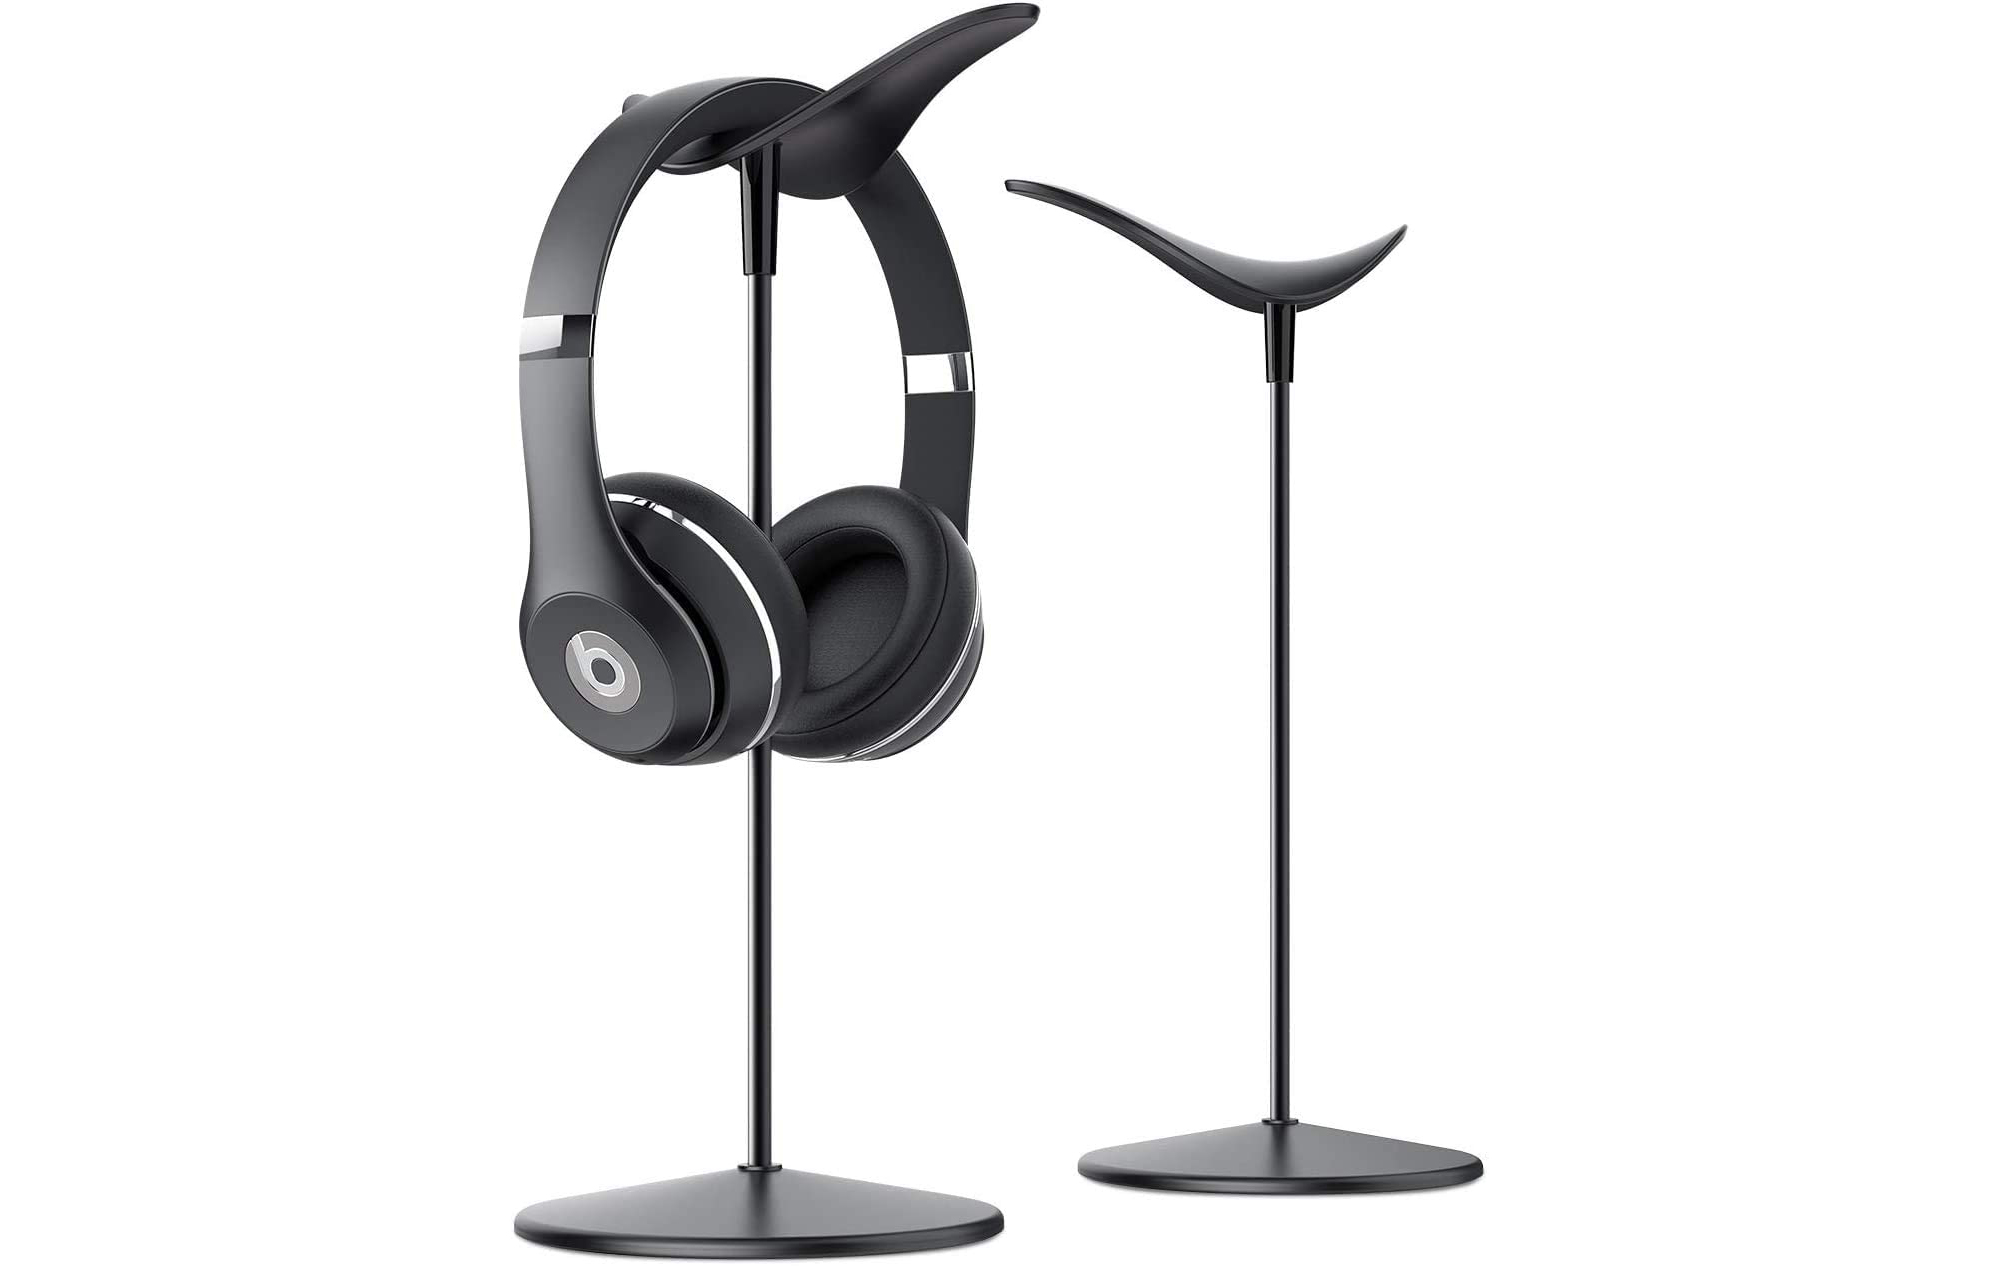 Lamicall headphone stand